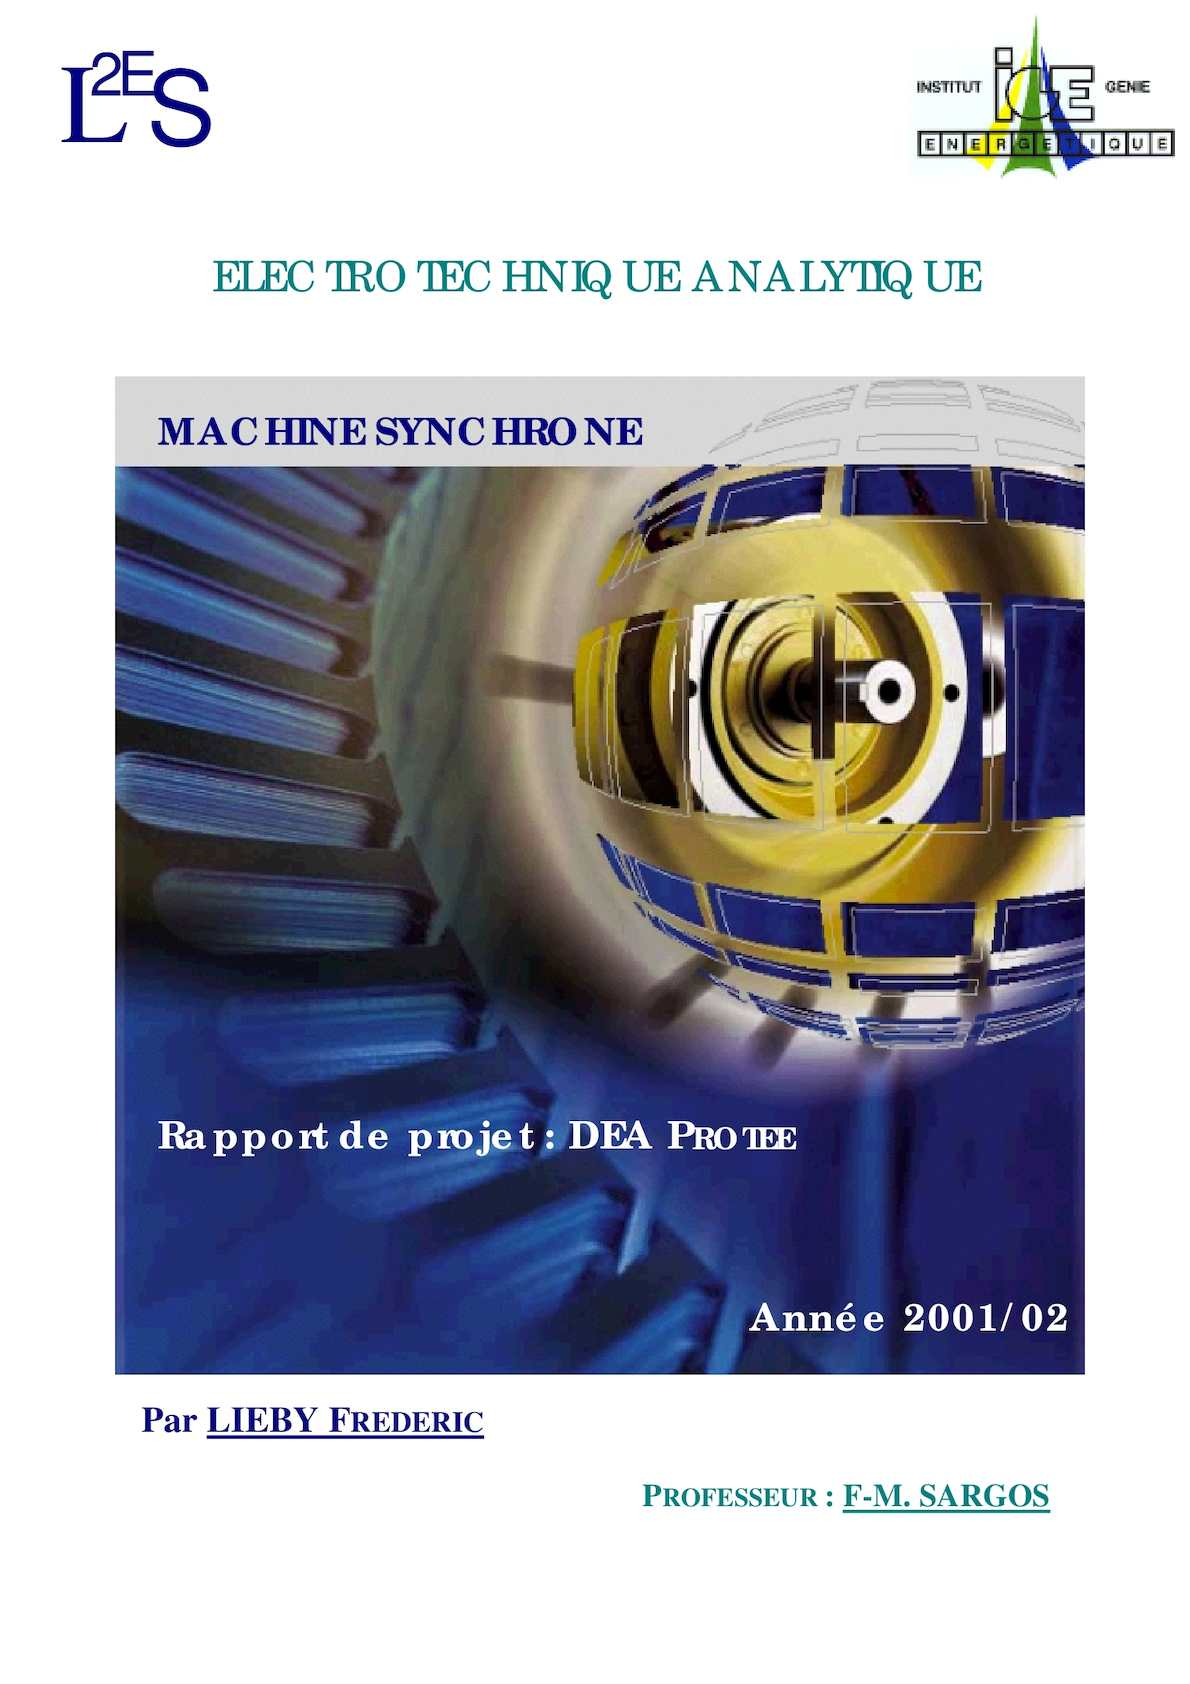 Electrotechnique Analytique (61pages) Machine Synchrone